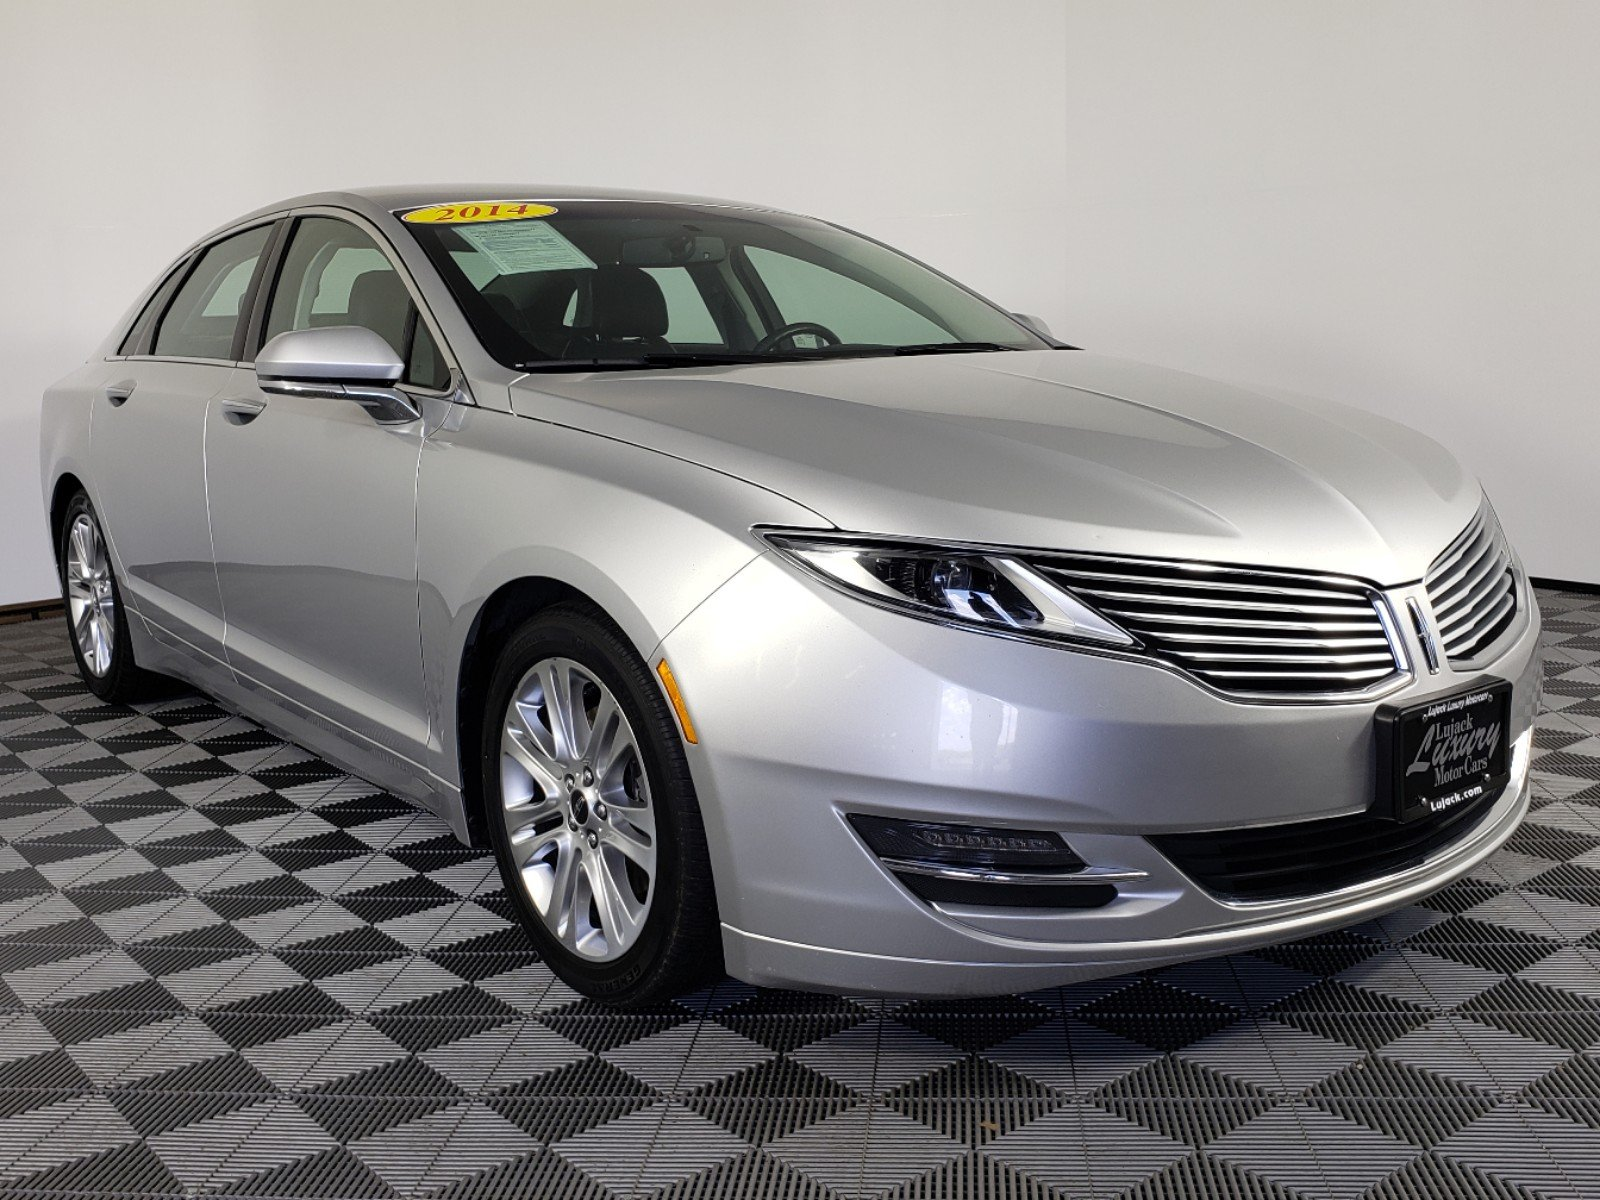 Pre-Owned 2014 Lincoln MKZ Base FWD 4dr Car